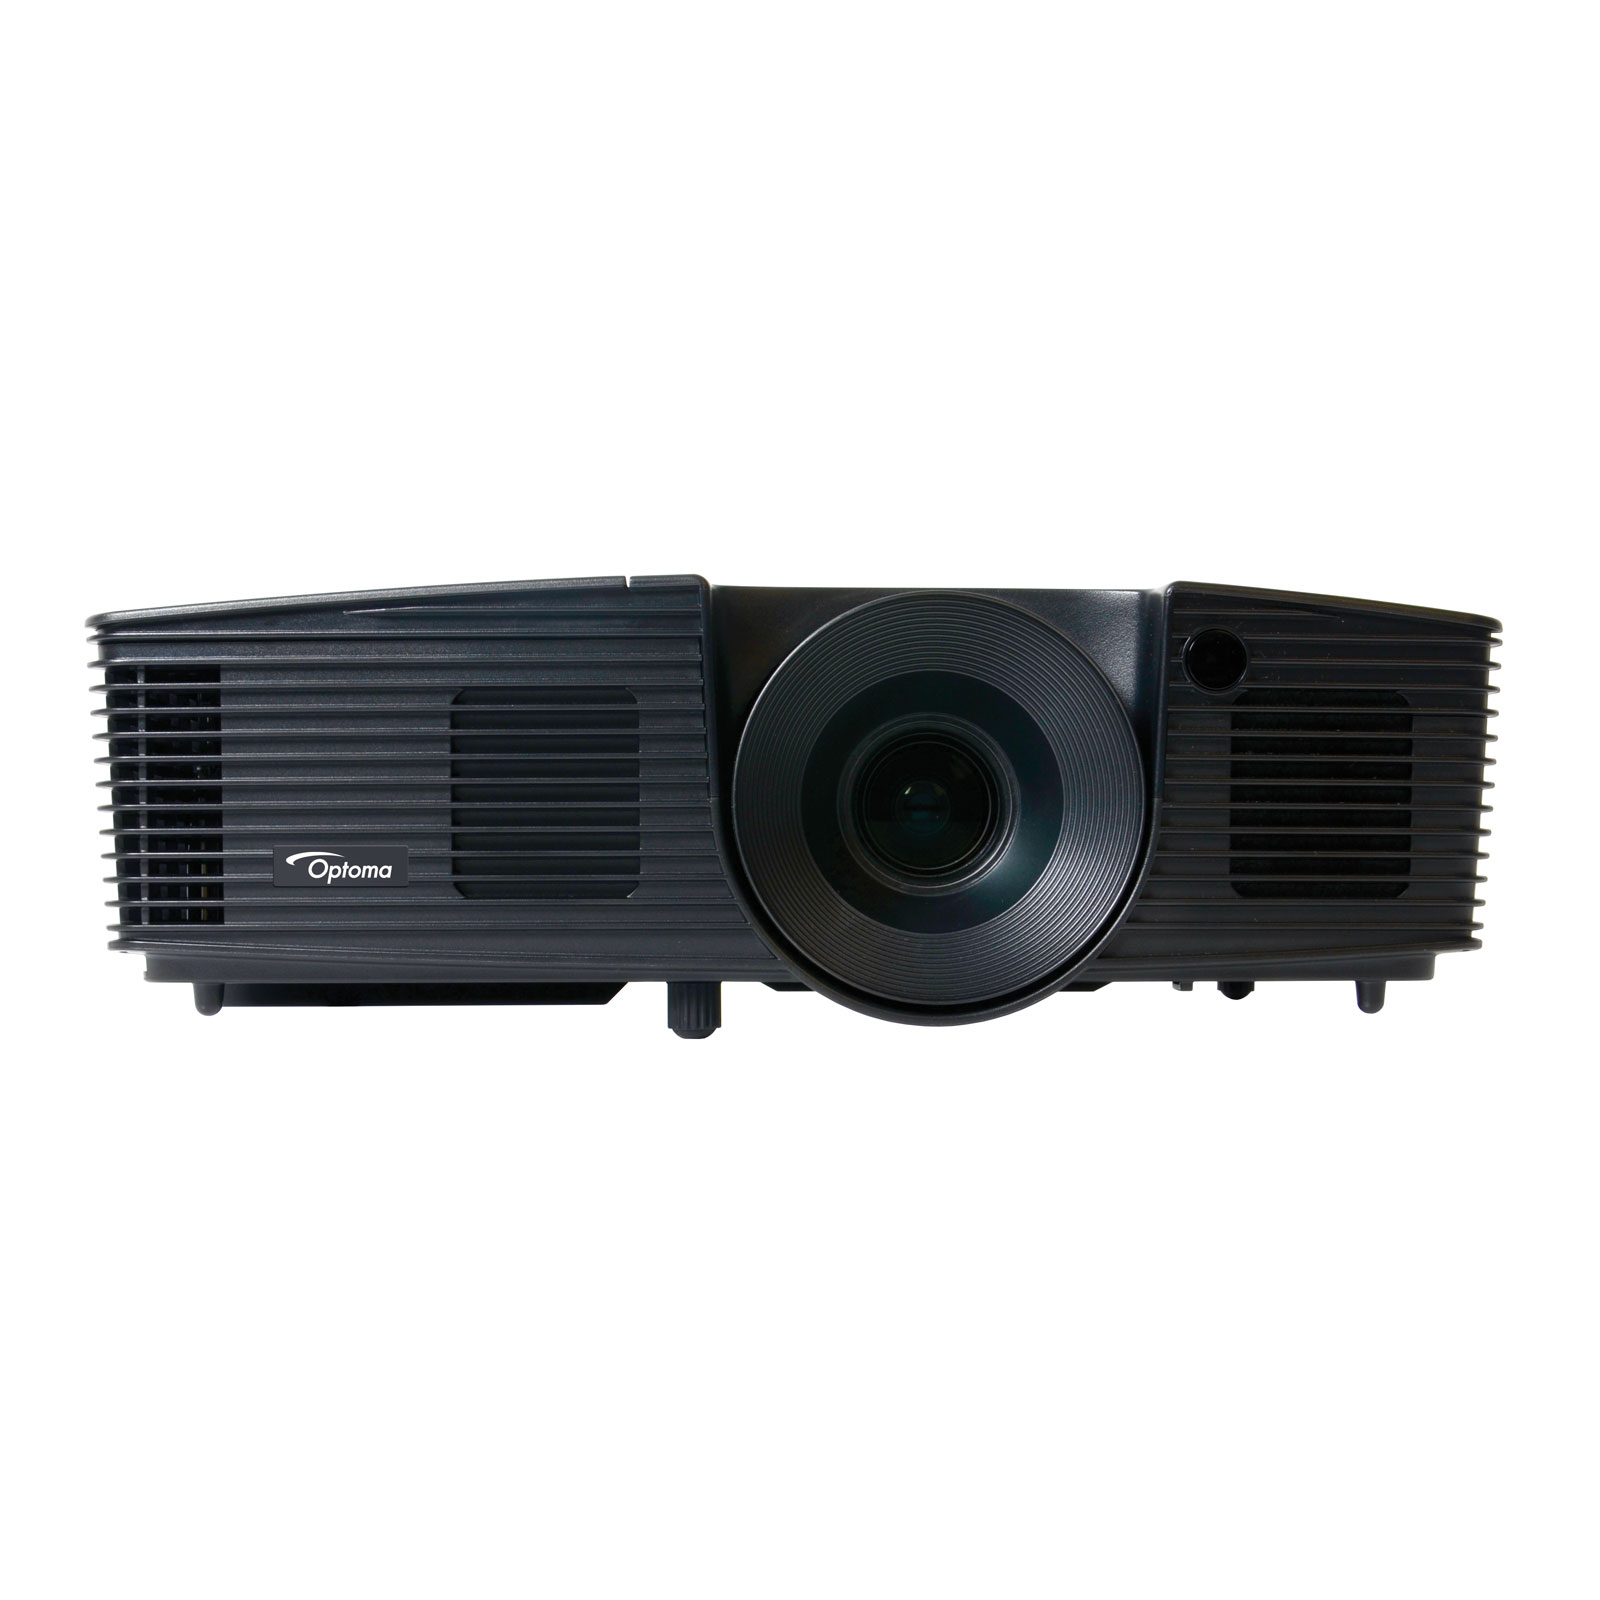 Optoma dx342 vid oprojecteur optoma sur - Support plafond videoprojecteur optoma ...